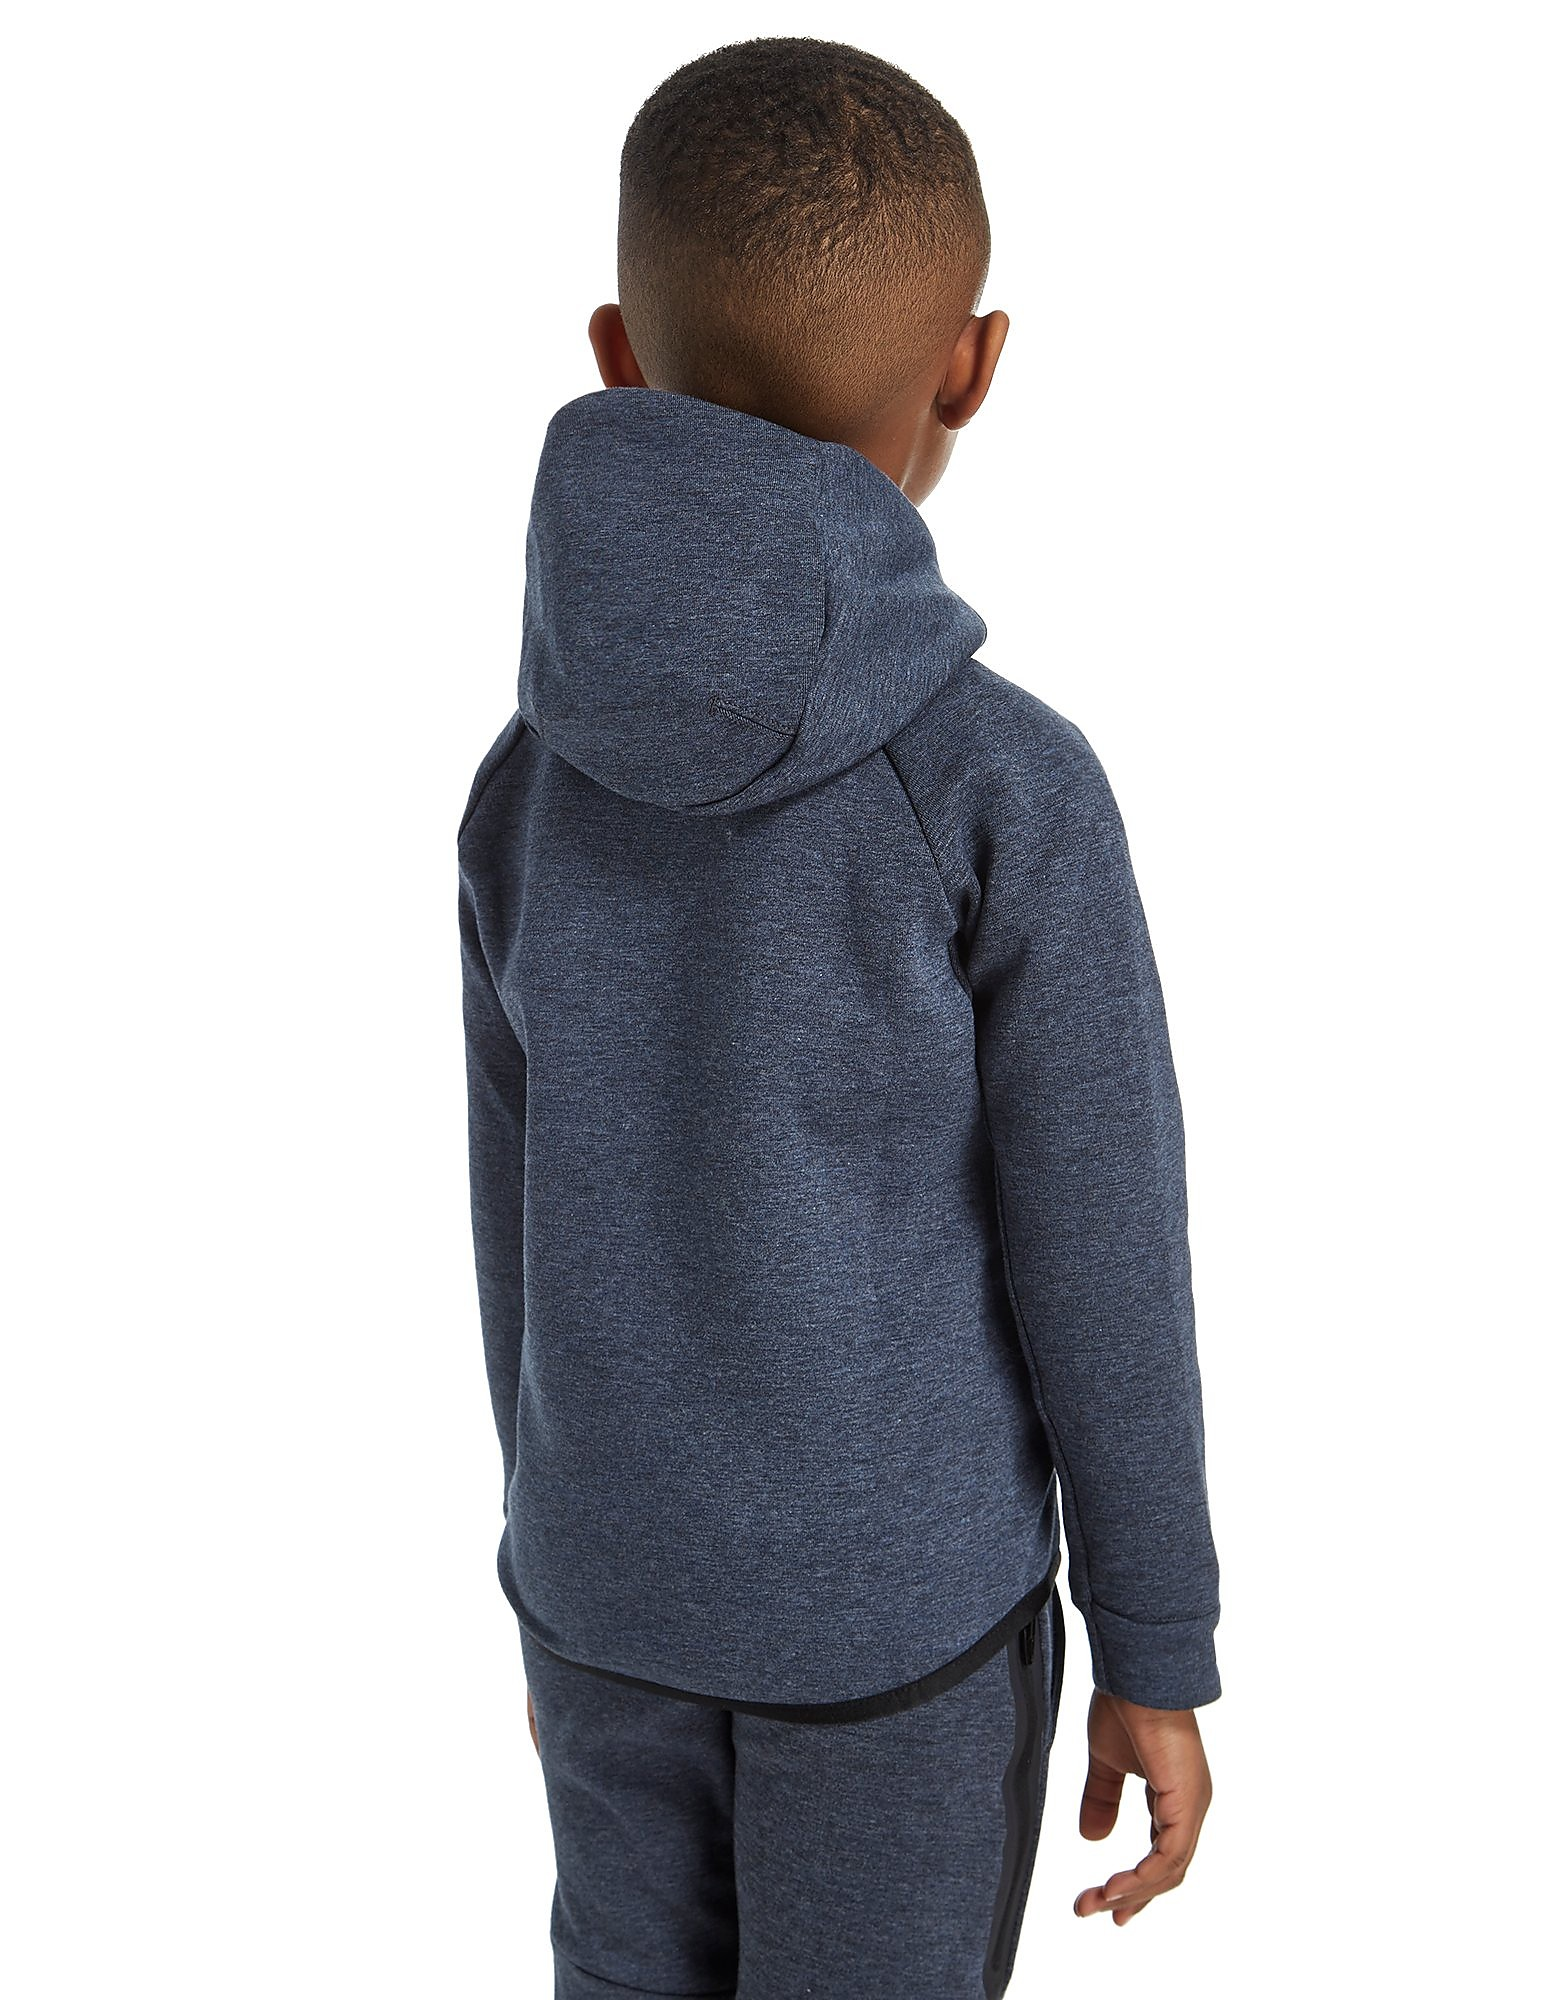 Nike Sweat Capuche Tech Fleece pour enfants